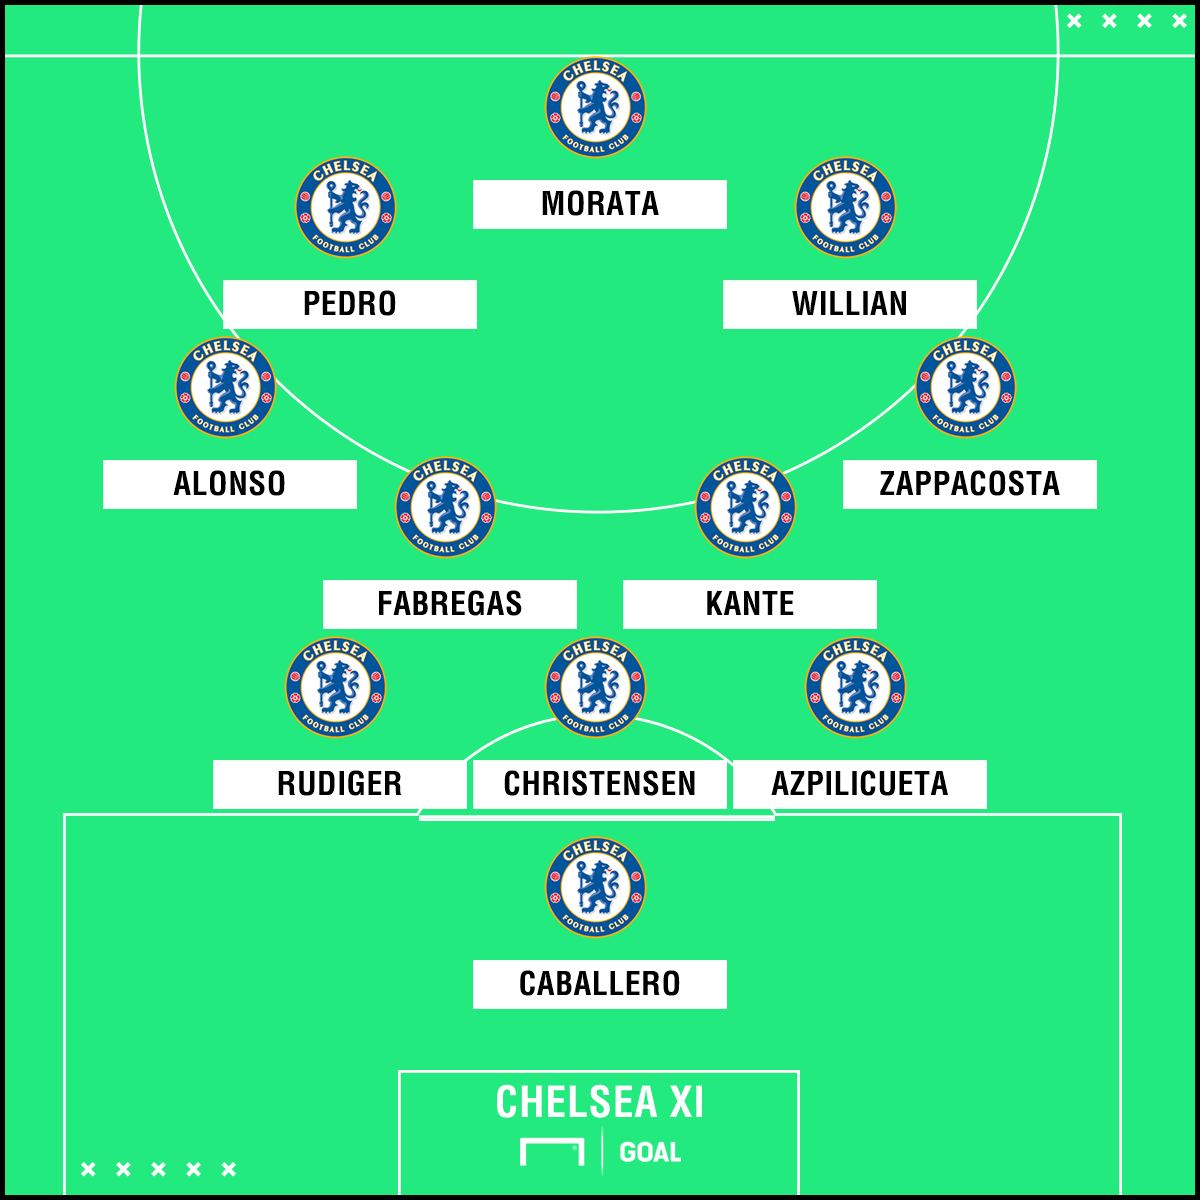 Chelsea XI to face Huddersfield